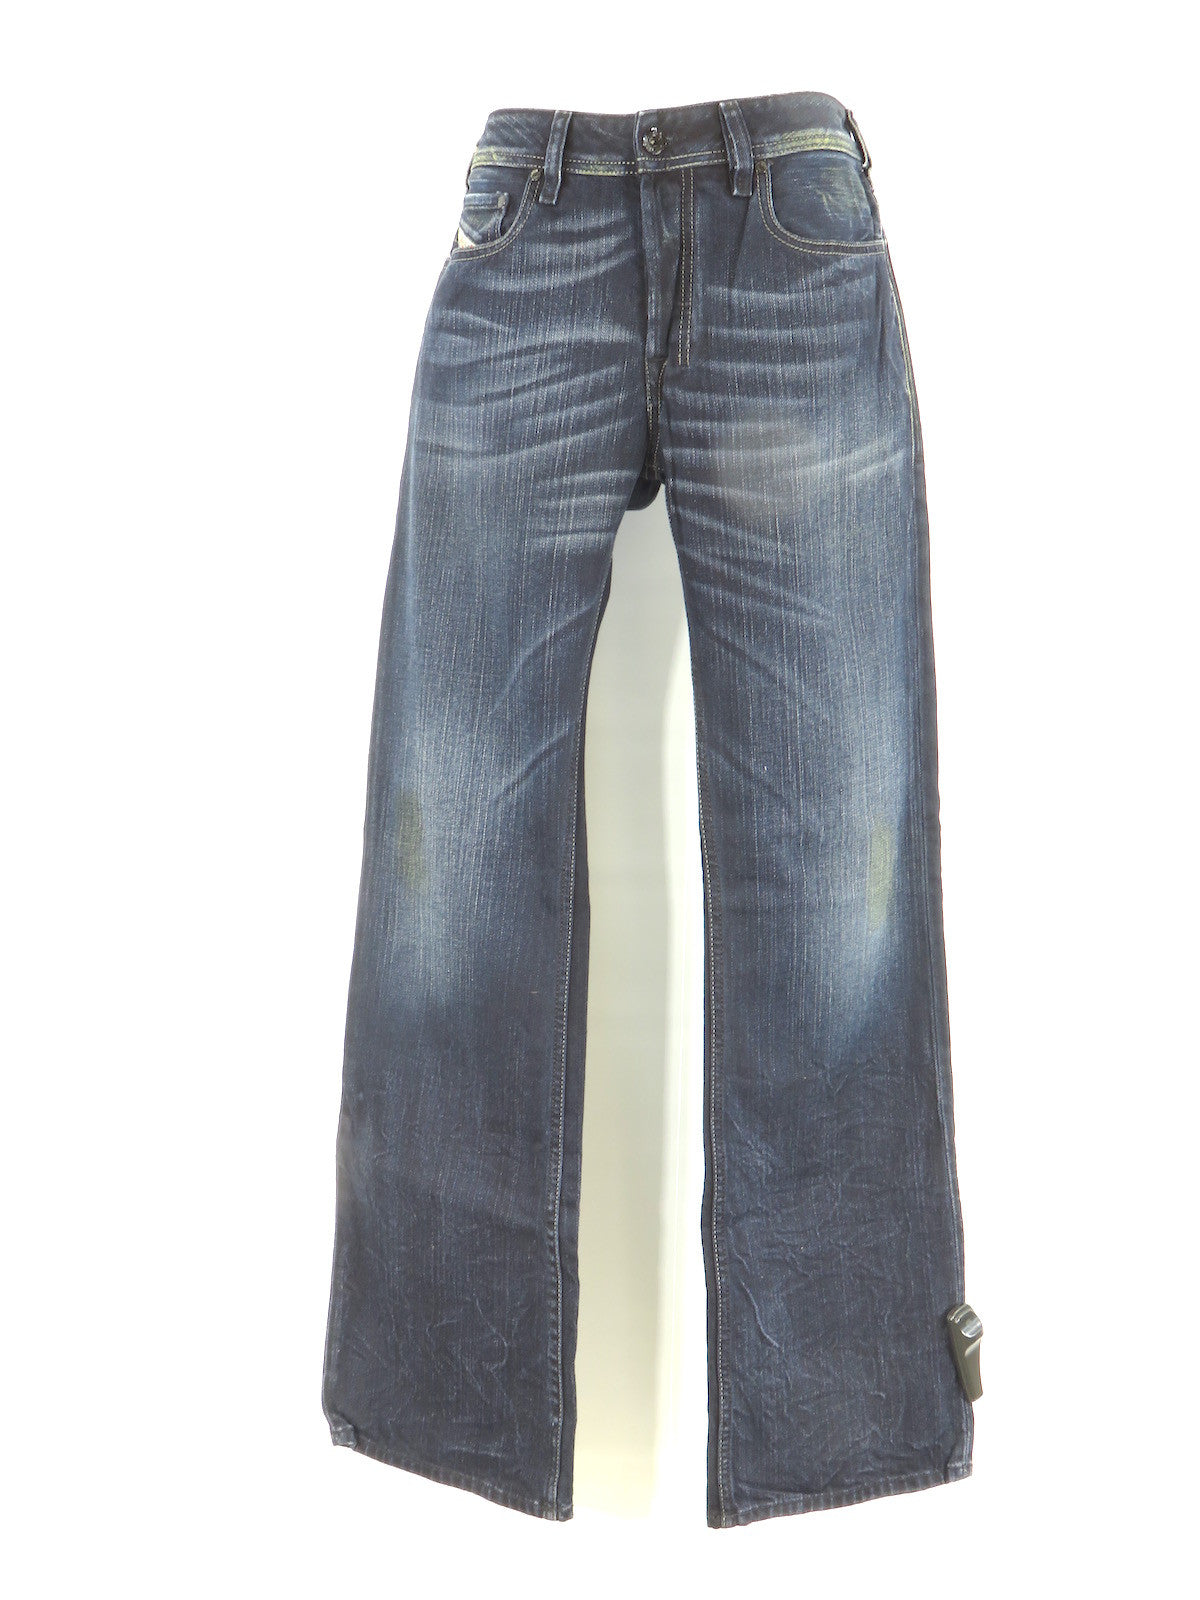 9a60e934 DIESEL Men Dark Wash Leather Accent ZATINY Straight Leg Pants Jeans 29